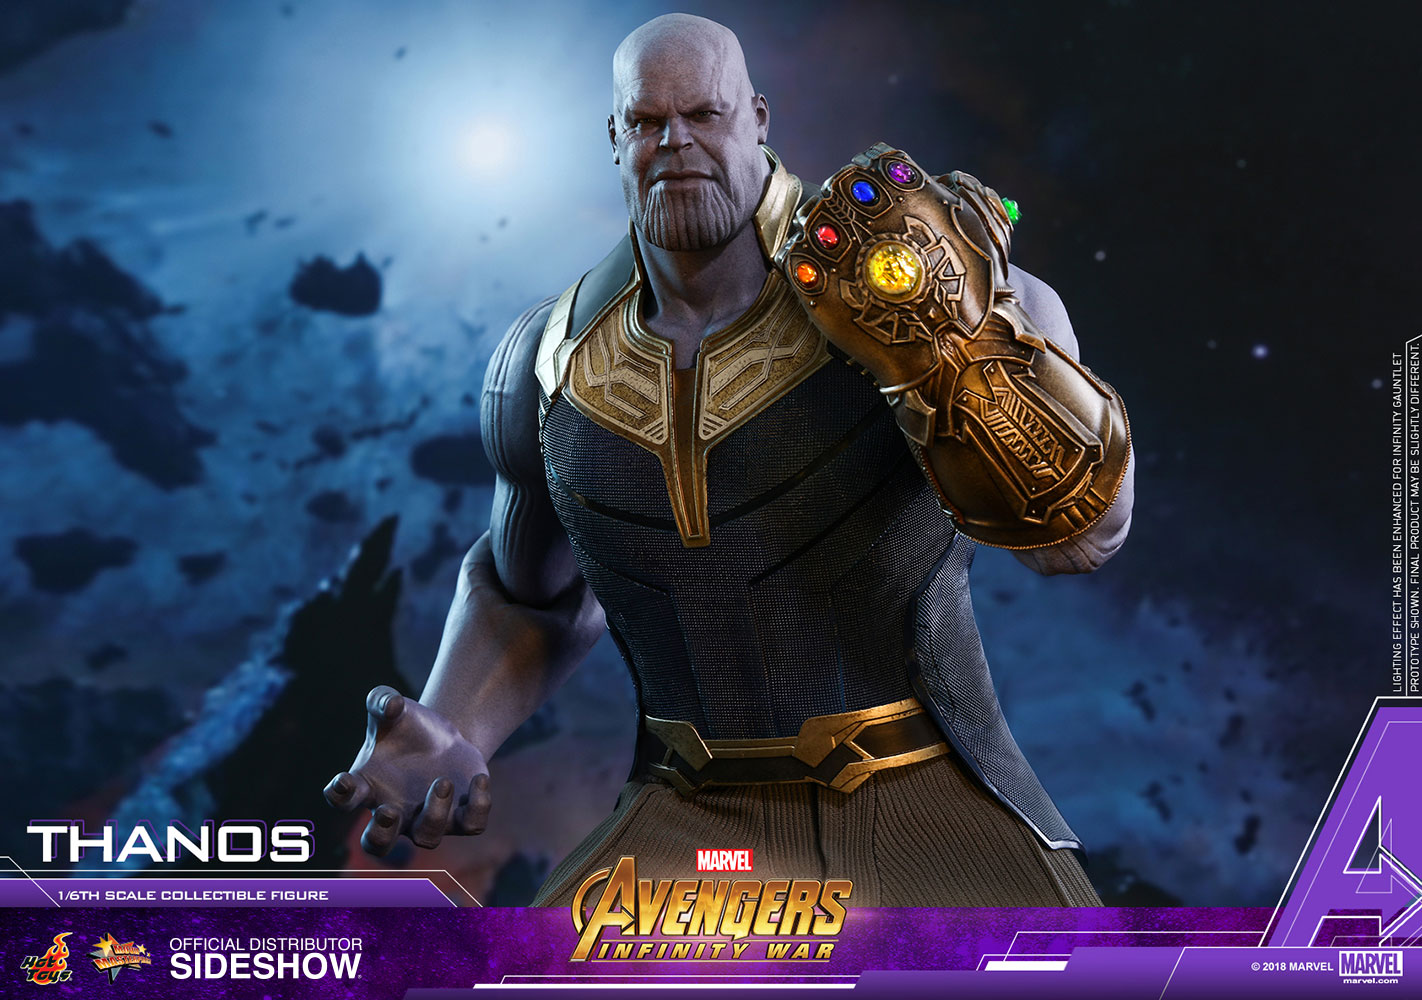 marvel-avengers-infinity-war-thanos-sixth-scale-figure-hot-toys-903429-10